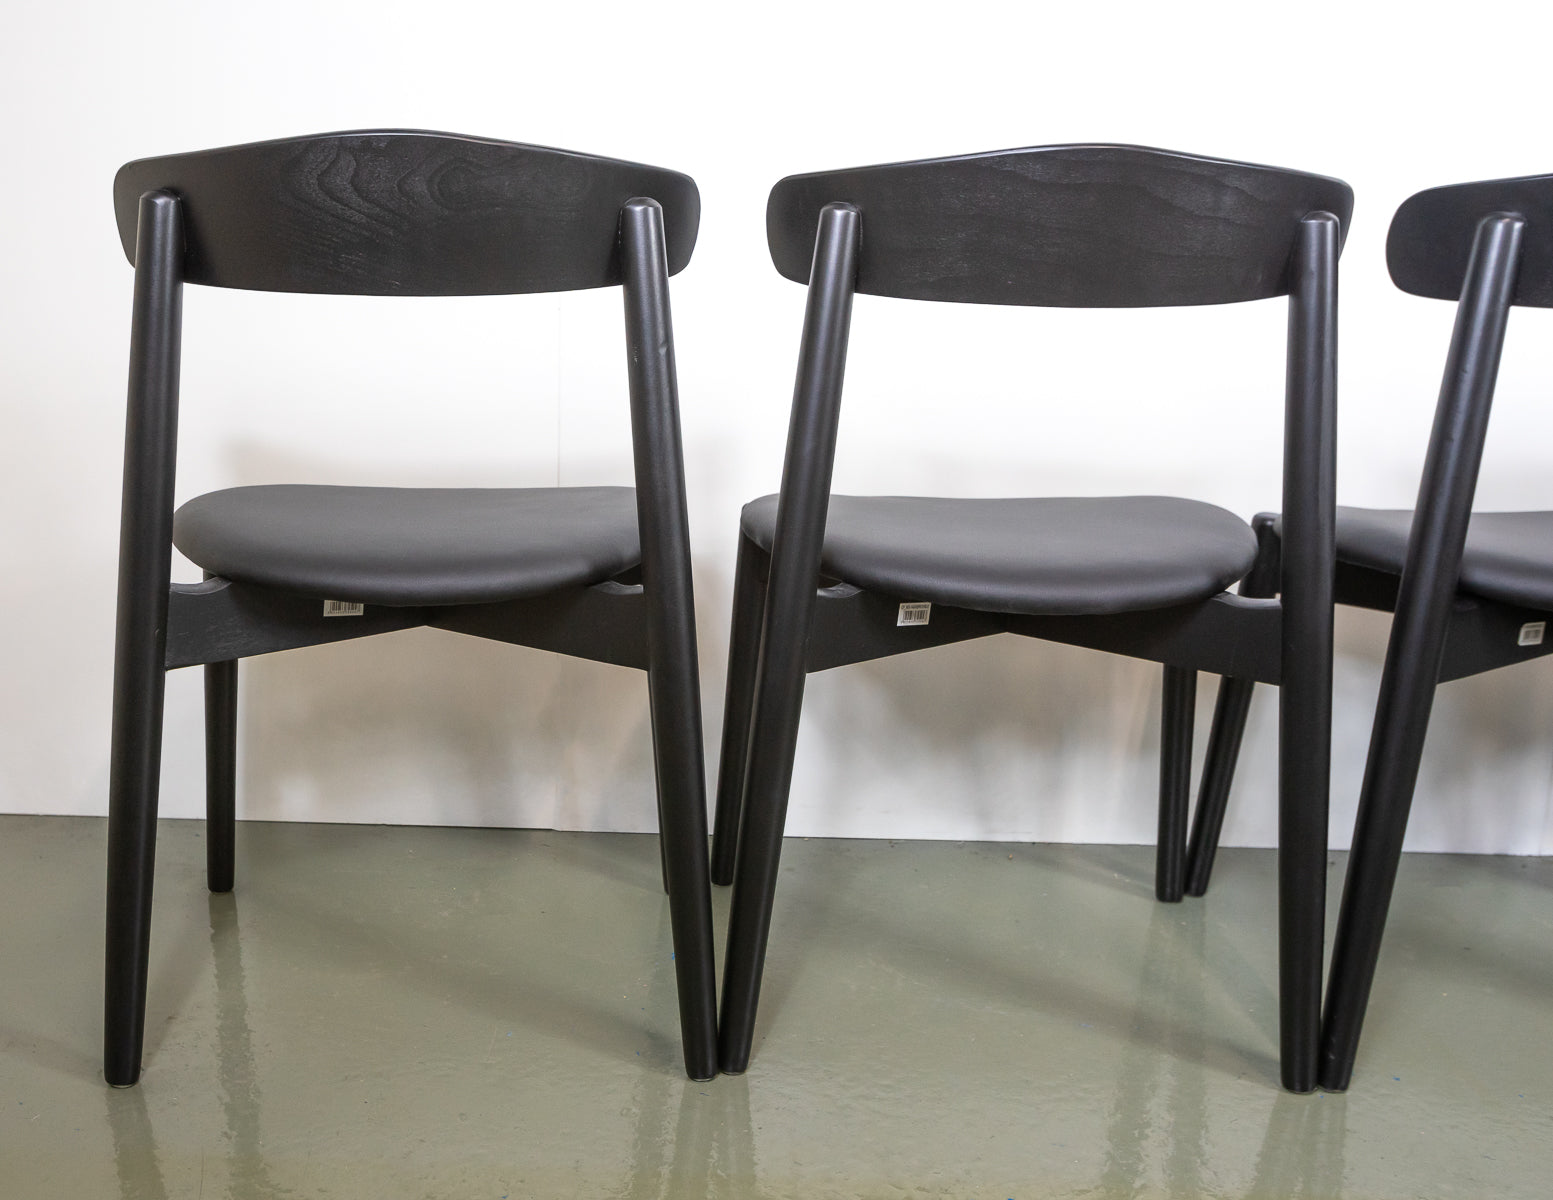 Cult Studio Solid Ash Wood Dining Chairs